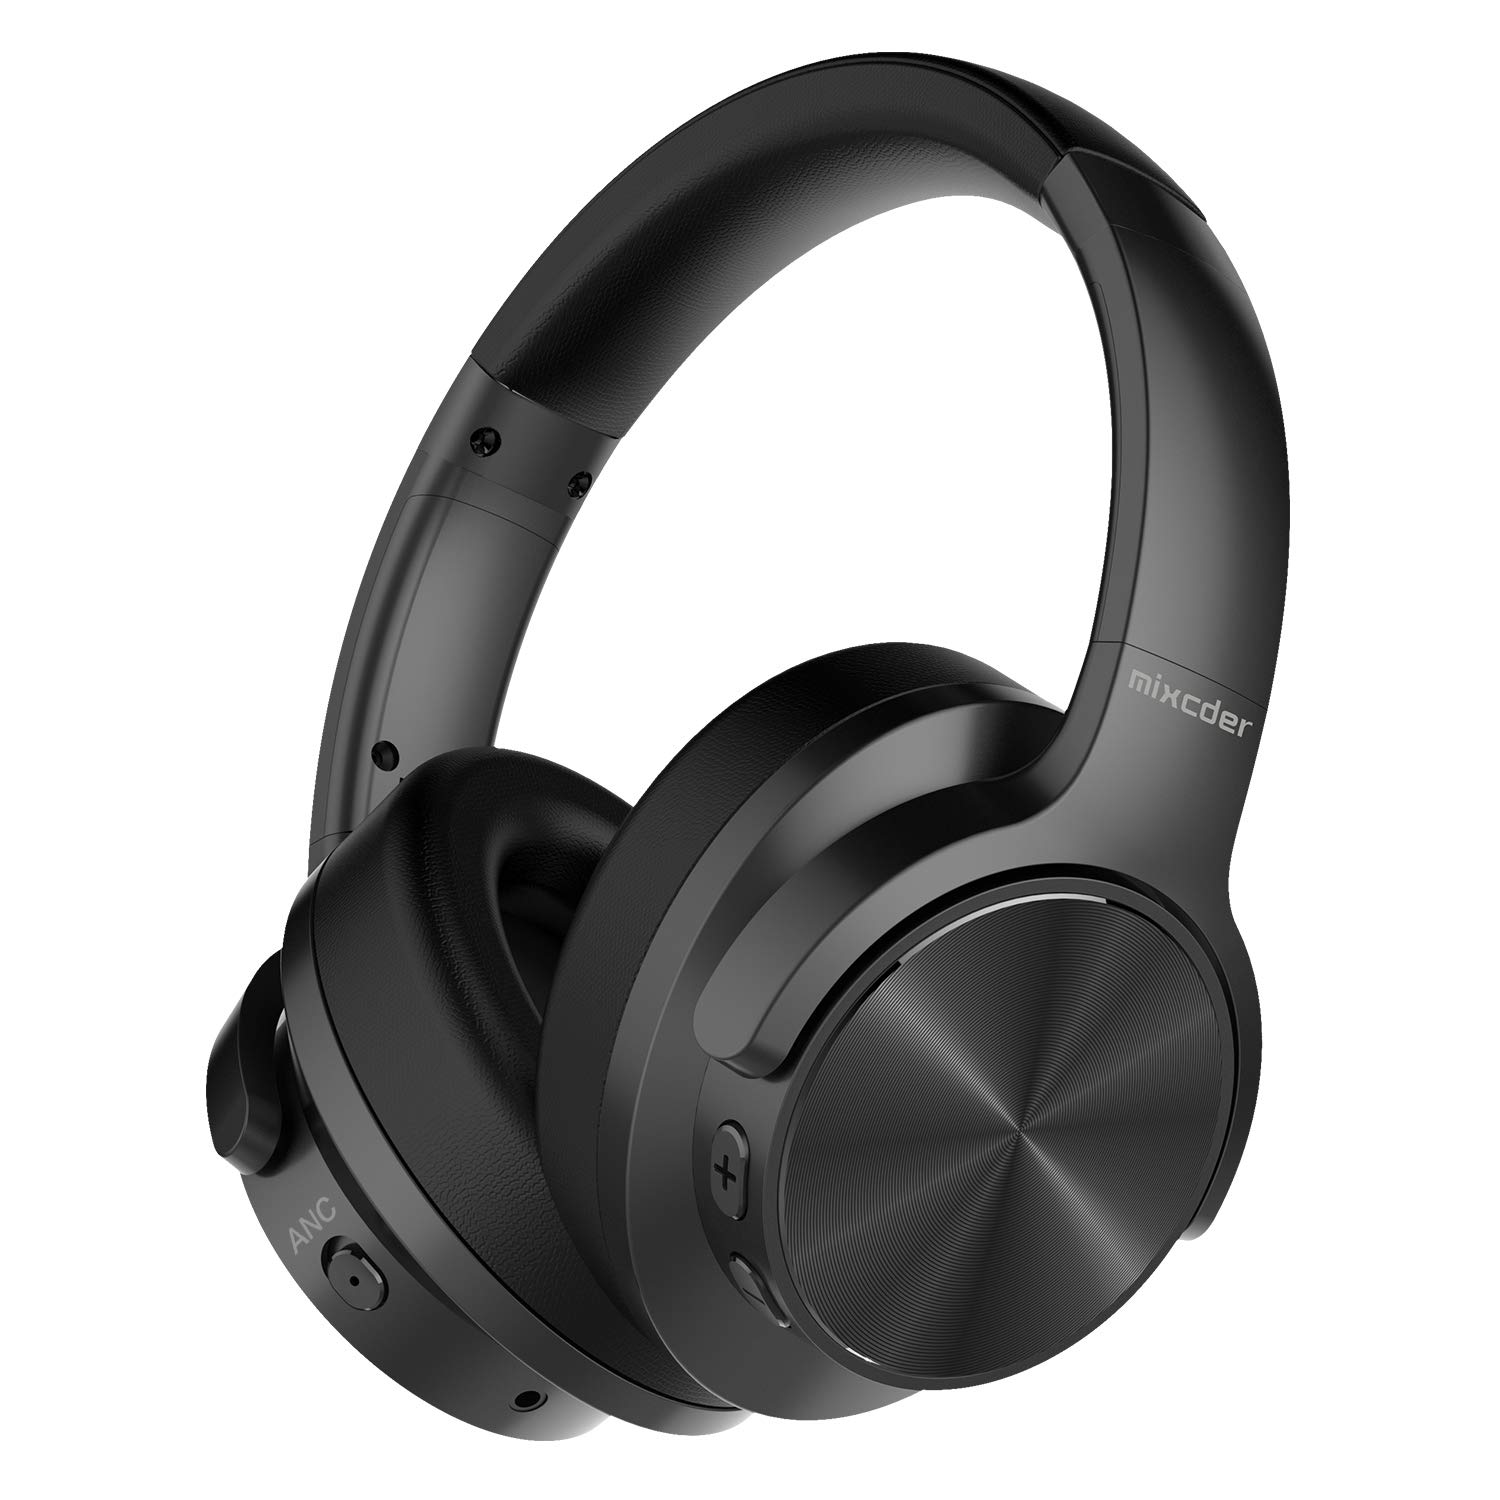 Mixcder E9 Wireless Active Noise Cancelling Headphones (Dual 40mm Drivers, Bluetooth CSR, Comfortable Protein Earpads, 30 Hours Battery Life), Black